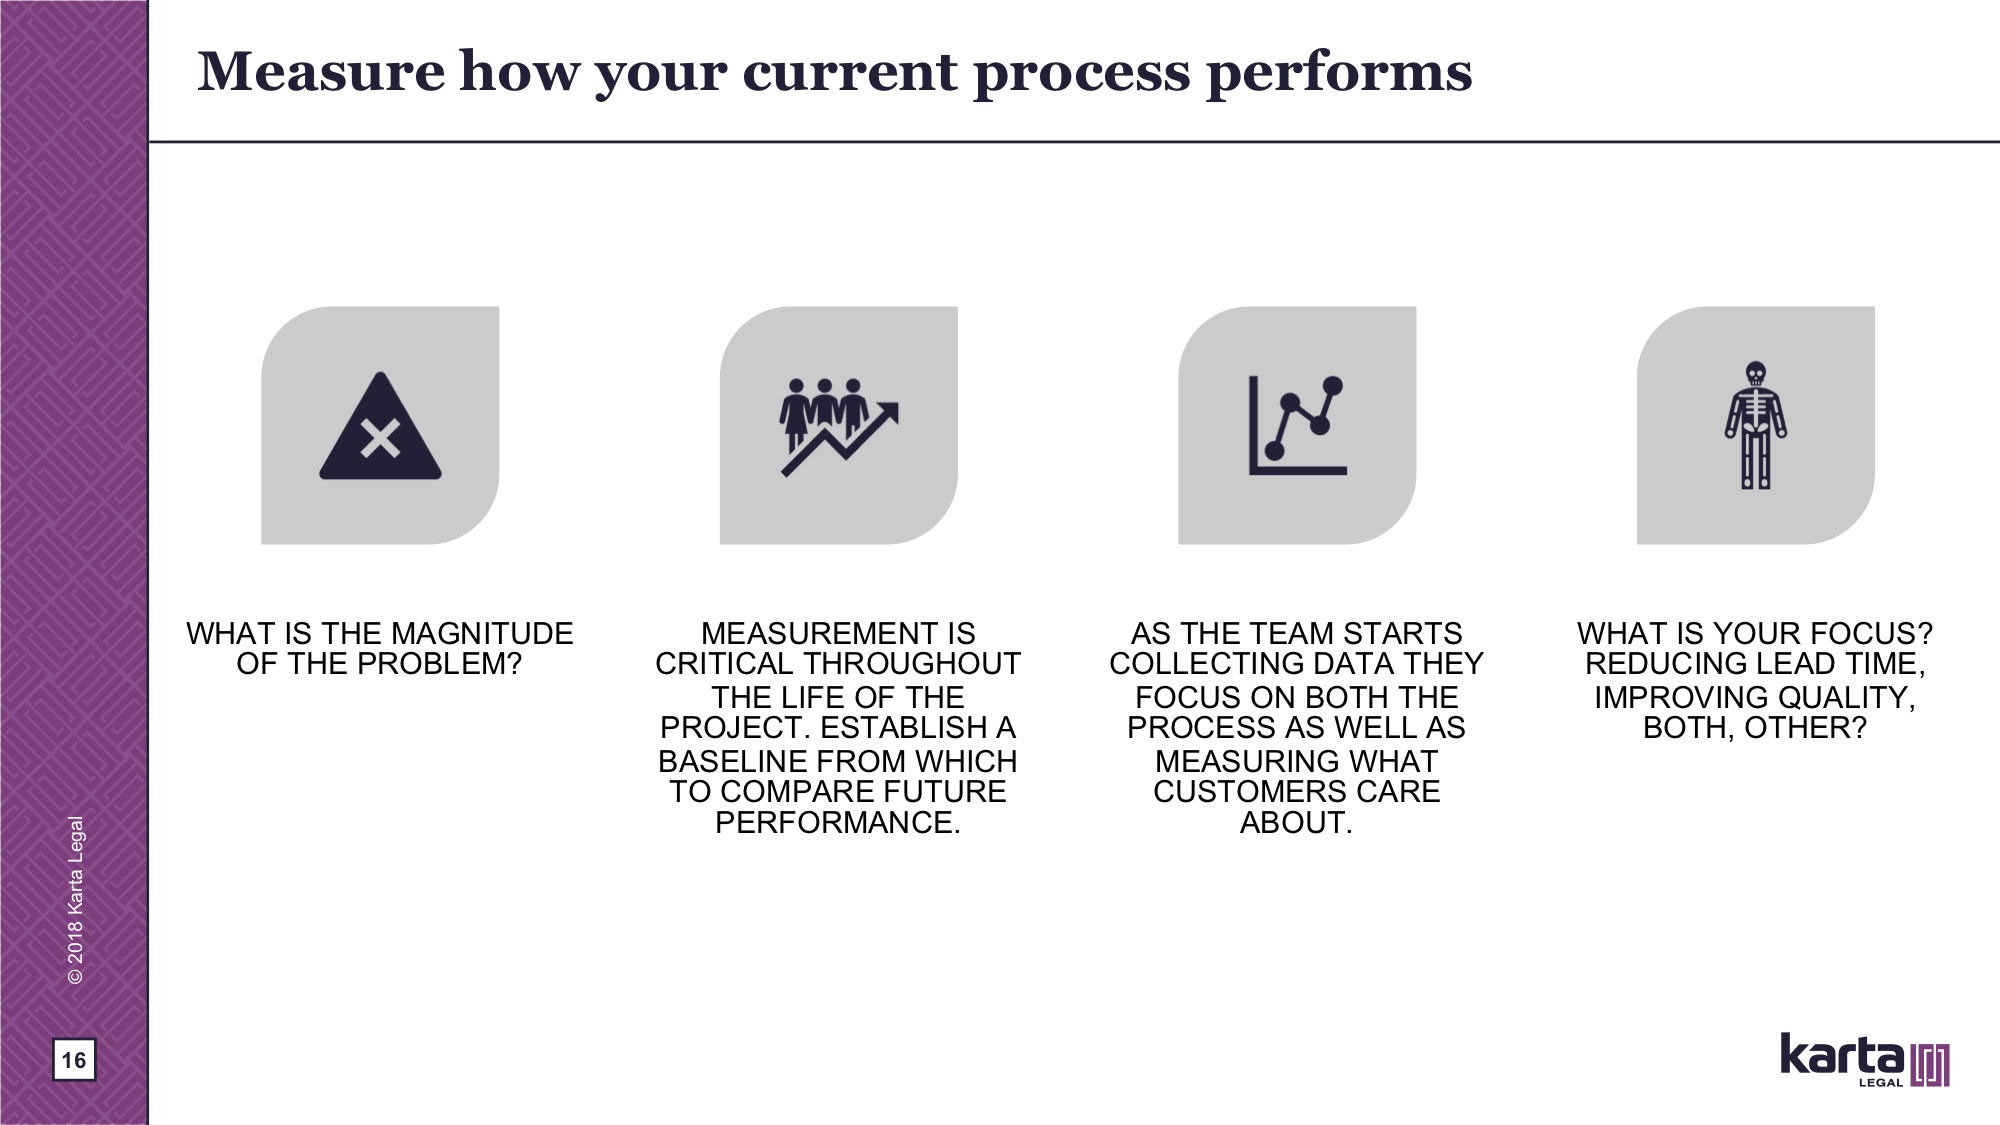 Know your current process performs